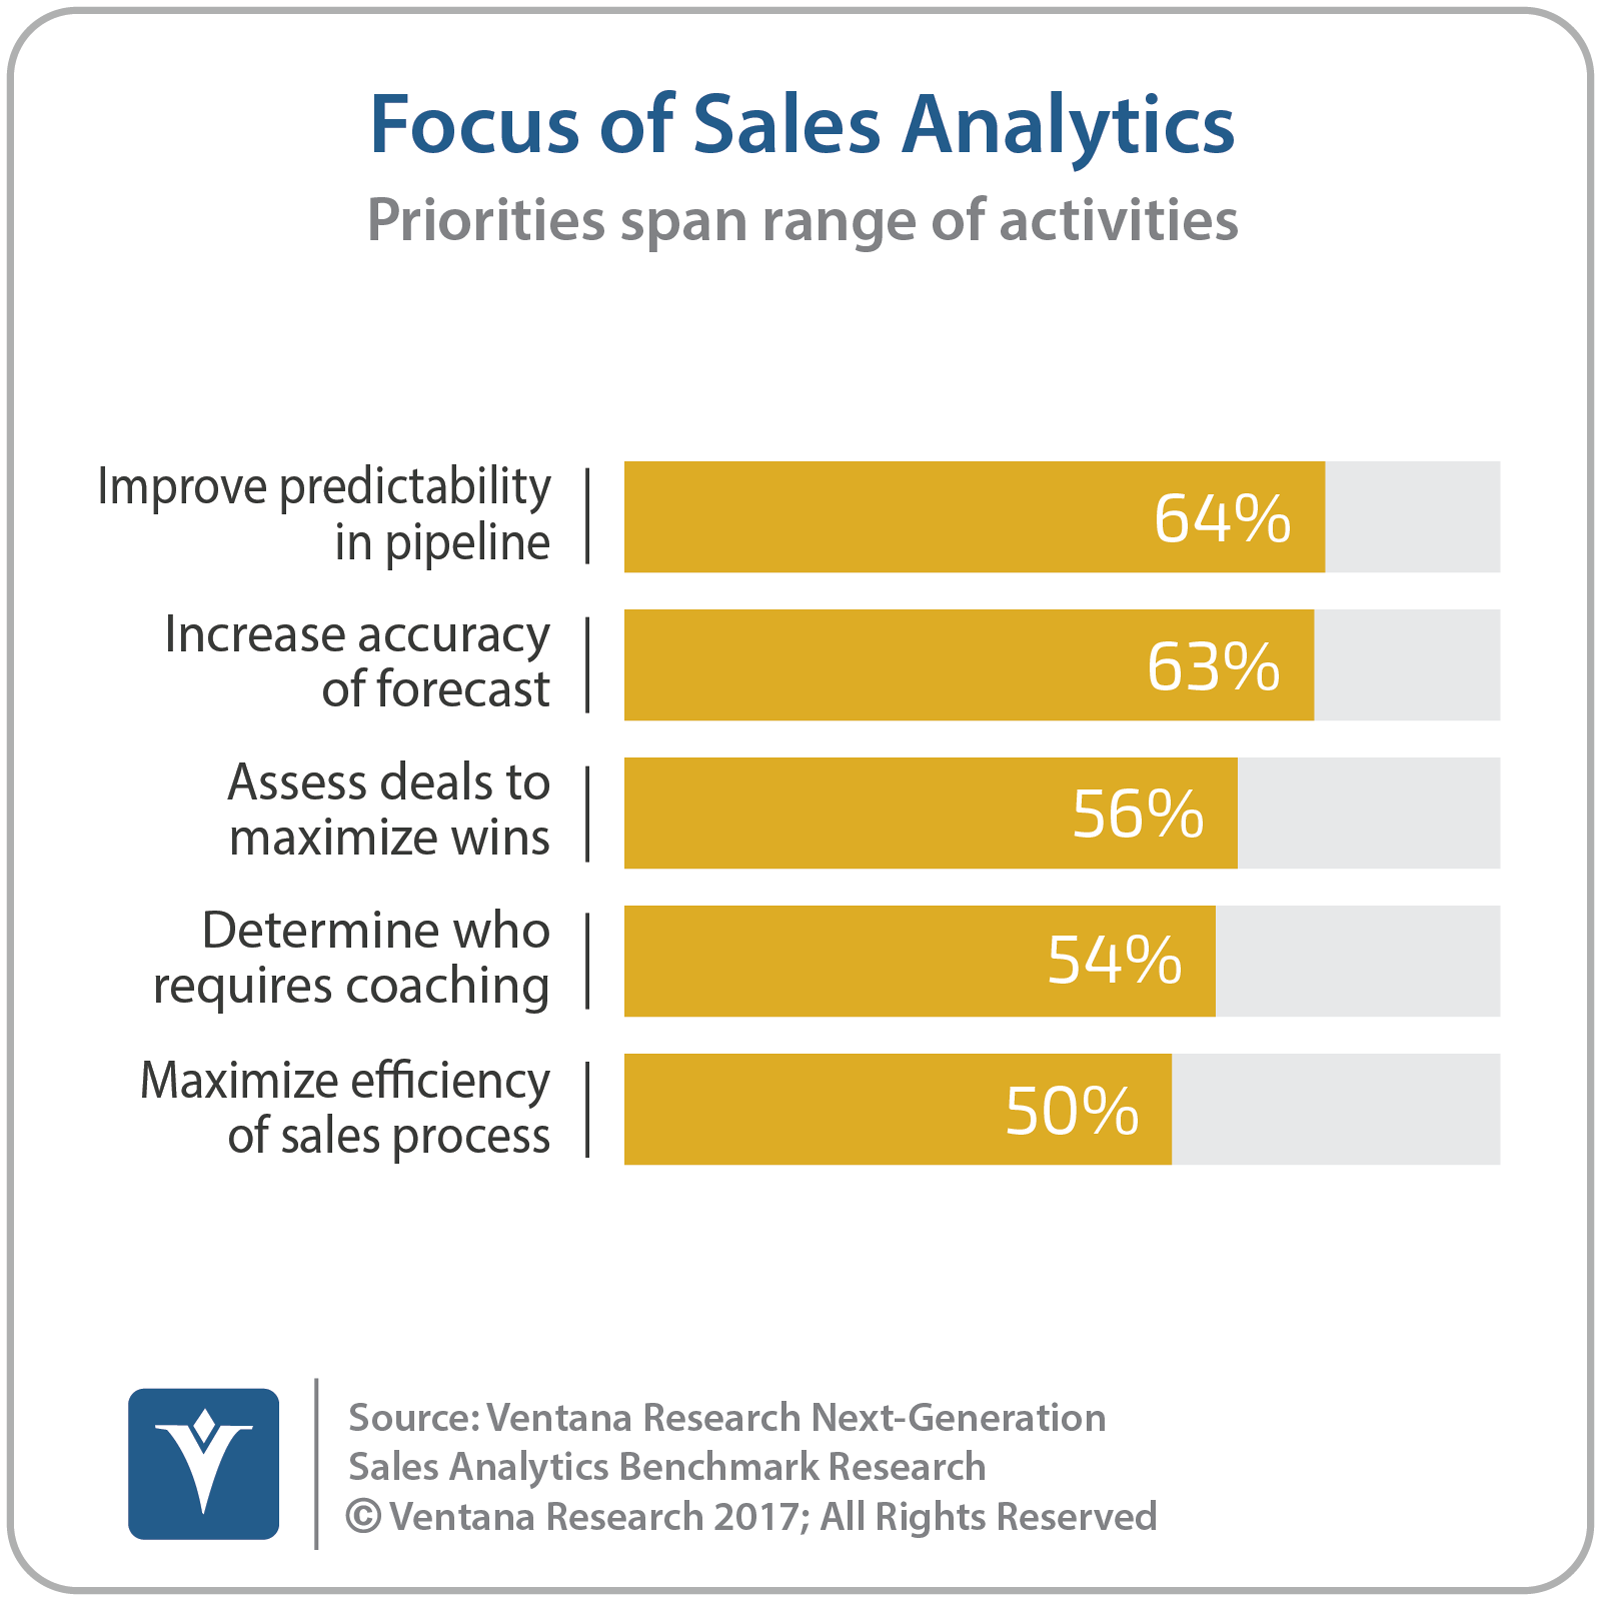 vr_NG_Sales_Analytics_01_focus_of_sales_analytics.png